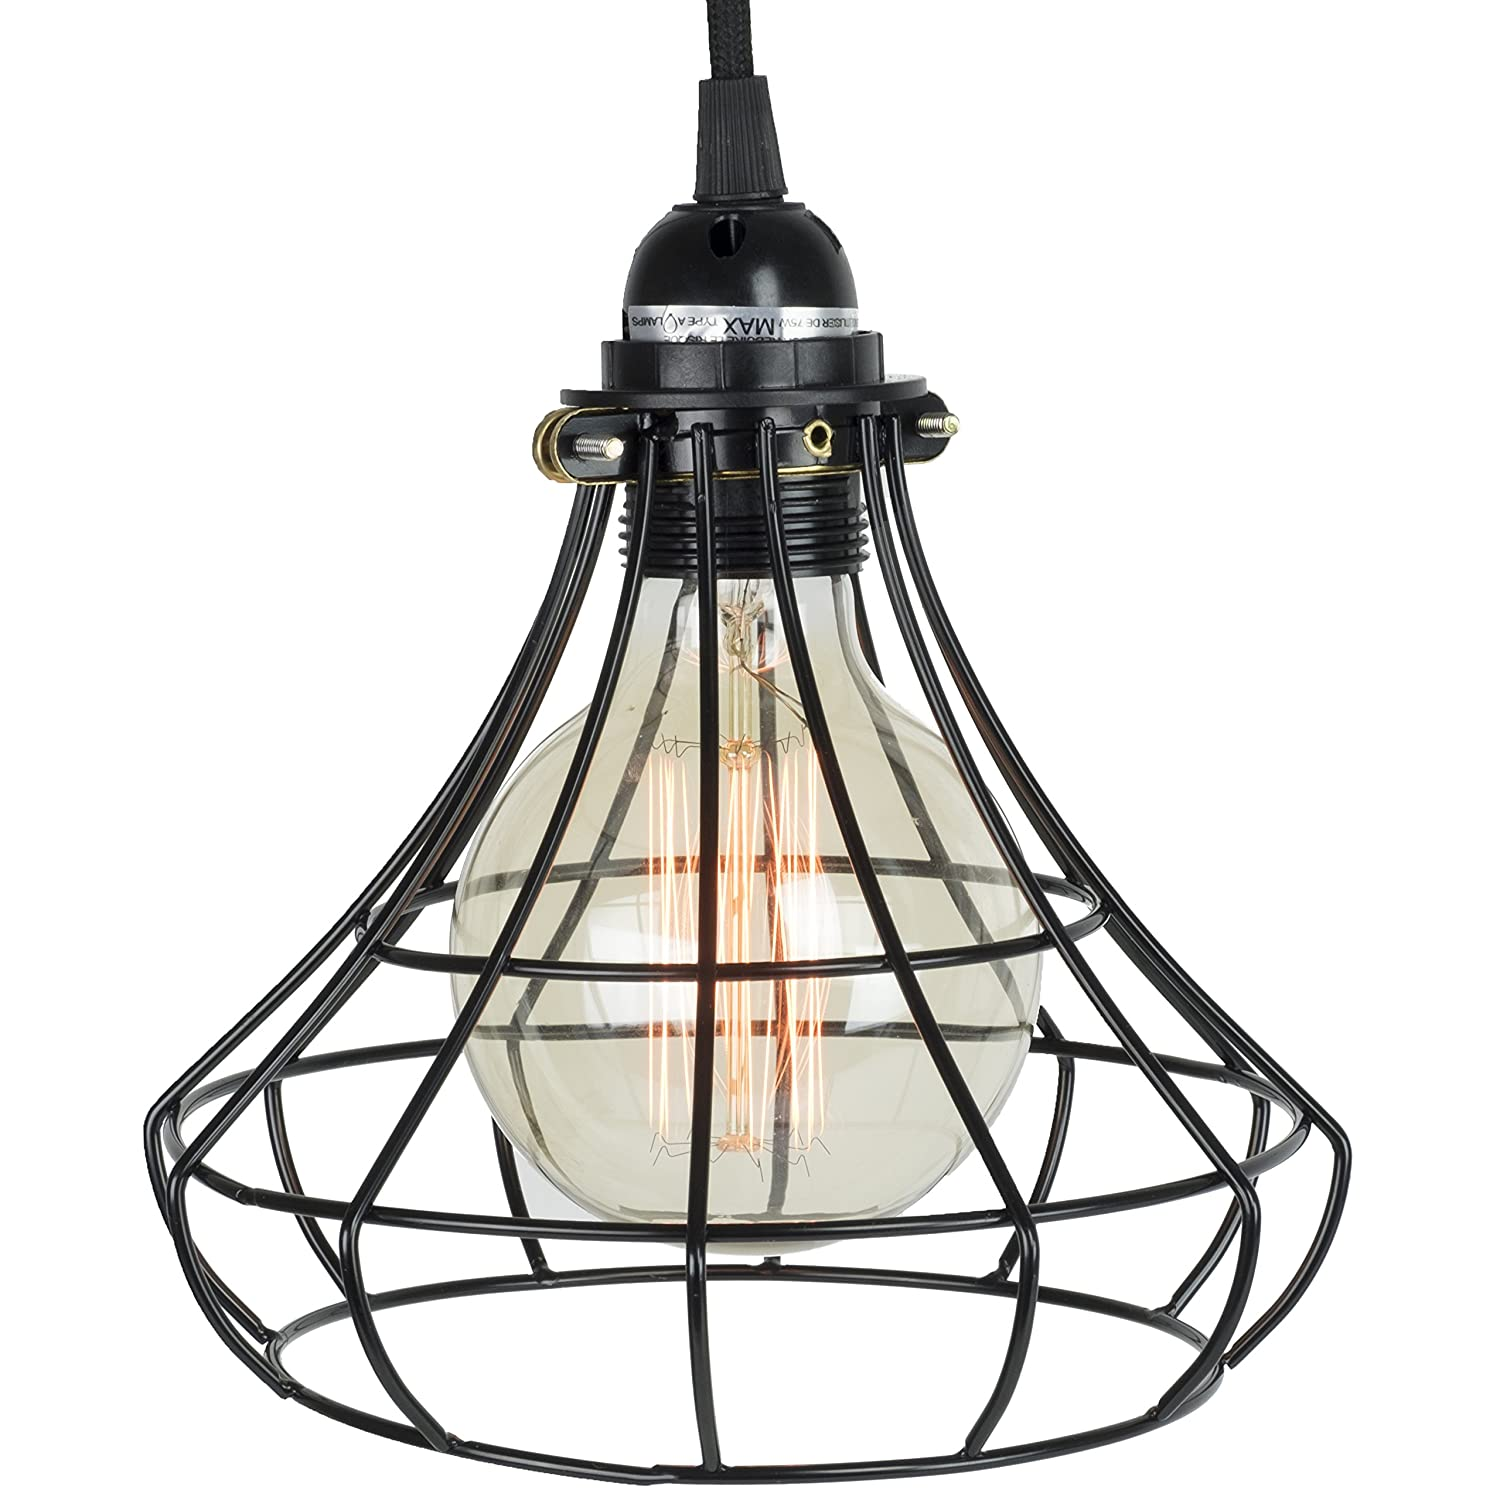 Industrial vintage style light cage lampshade for pendant light industrial vintage style light cage lampshade for pendant light lamps black amazon greentooth Choice Image